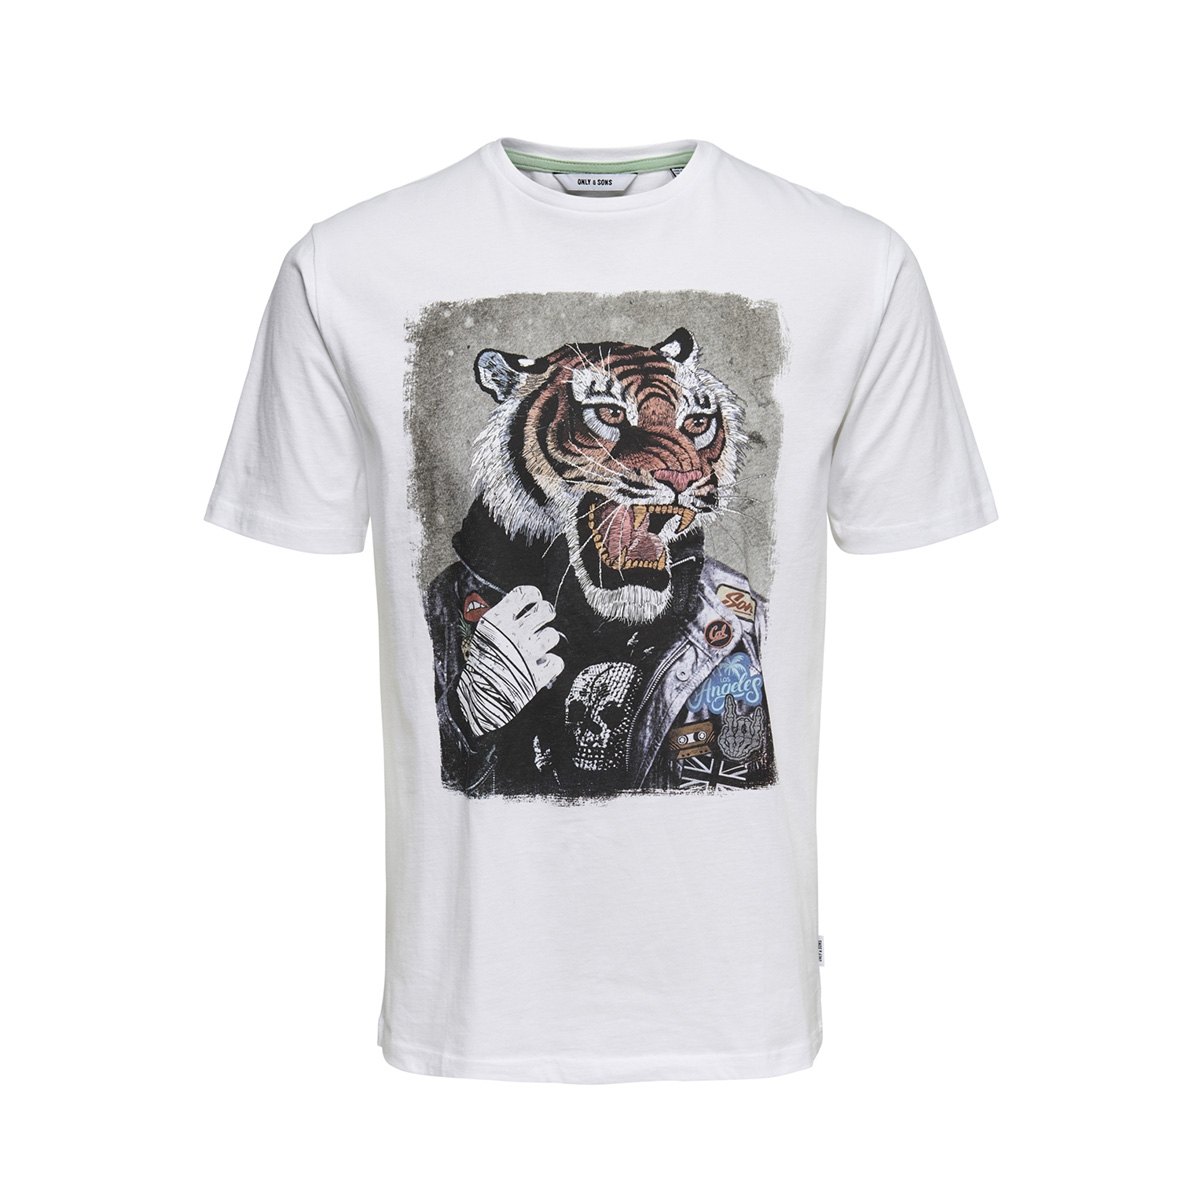 onsloris ss funny tee 22012566 only & sons t-shirt white